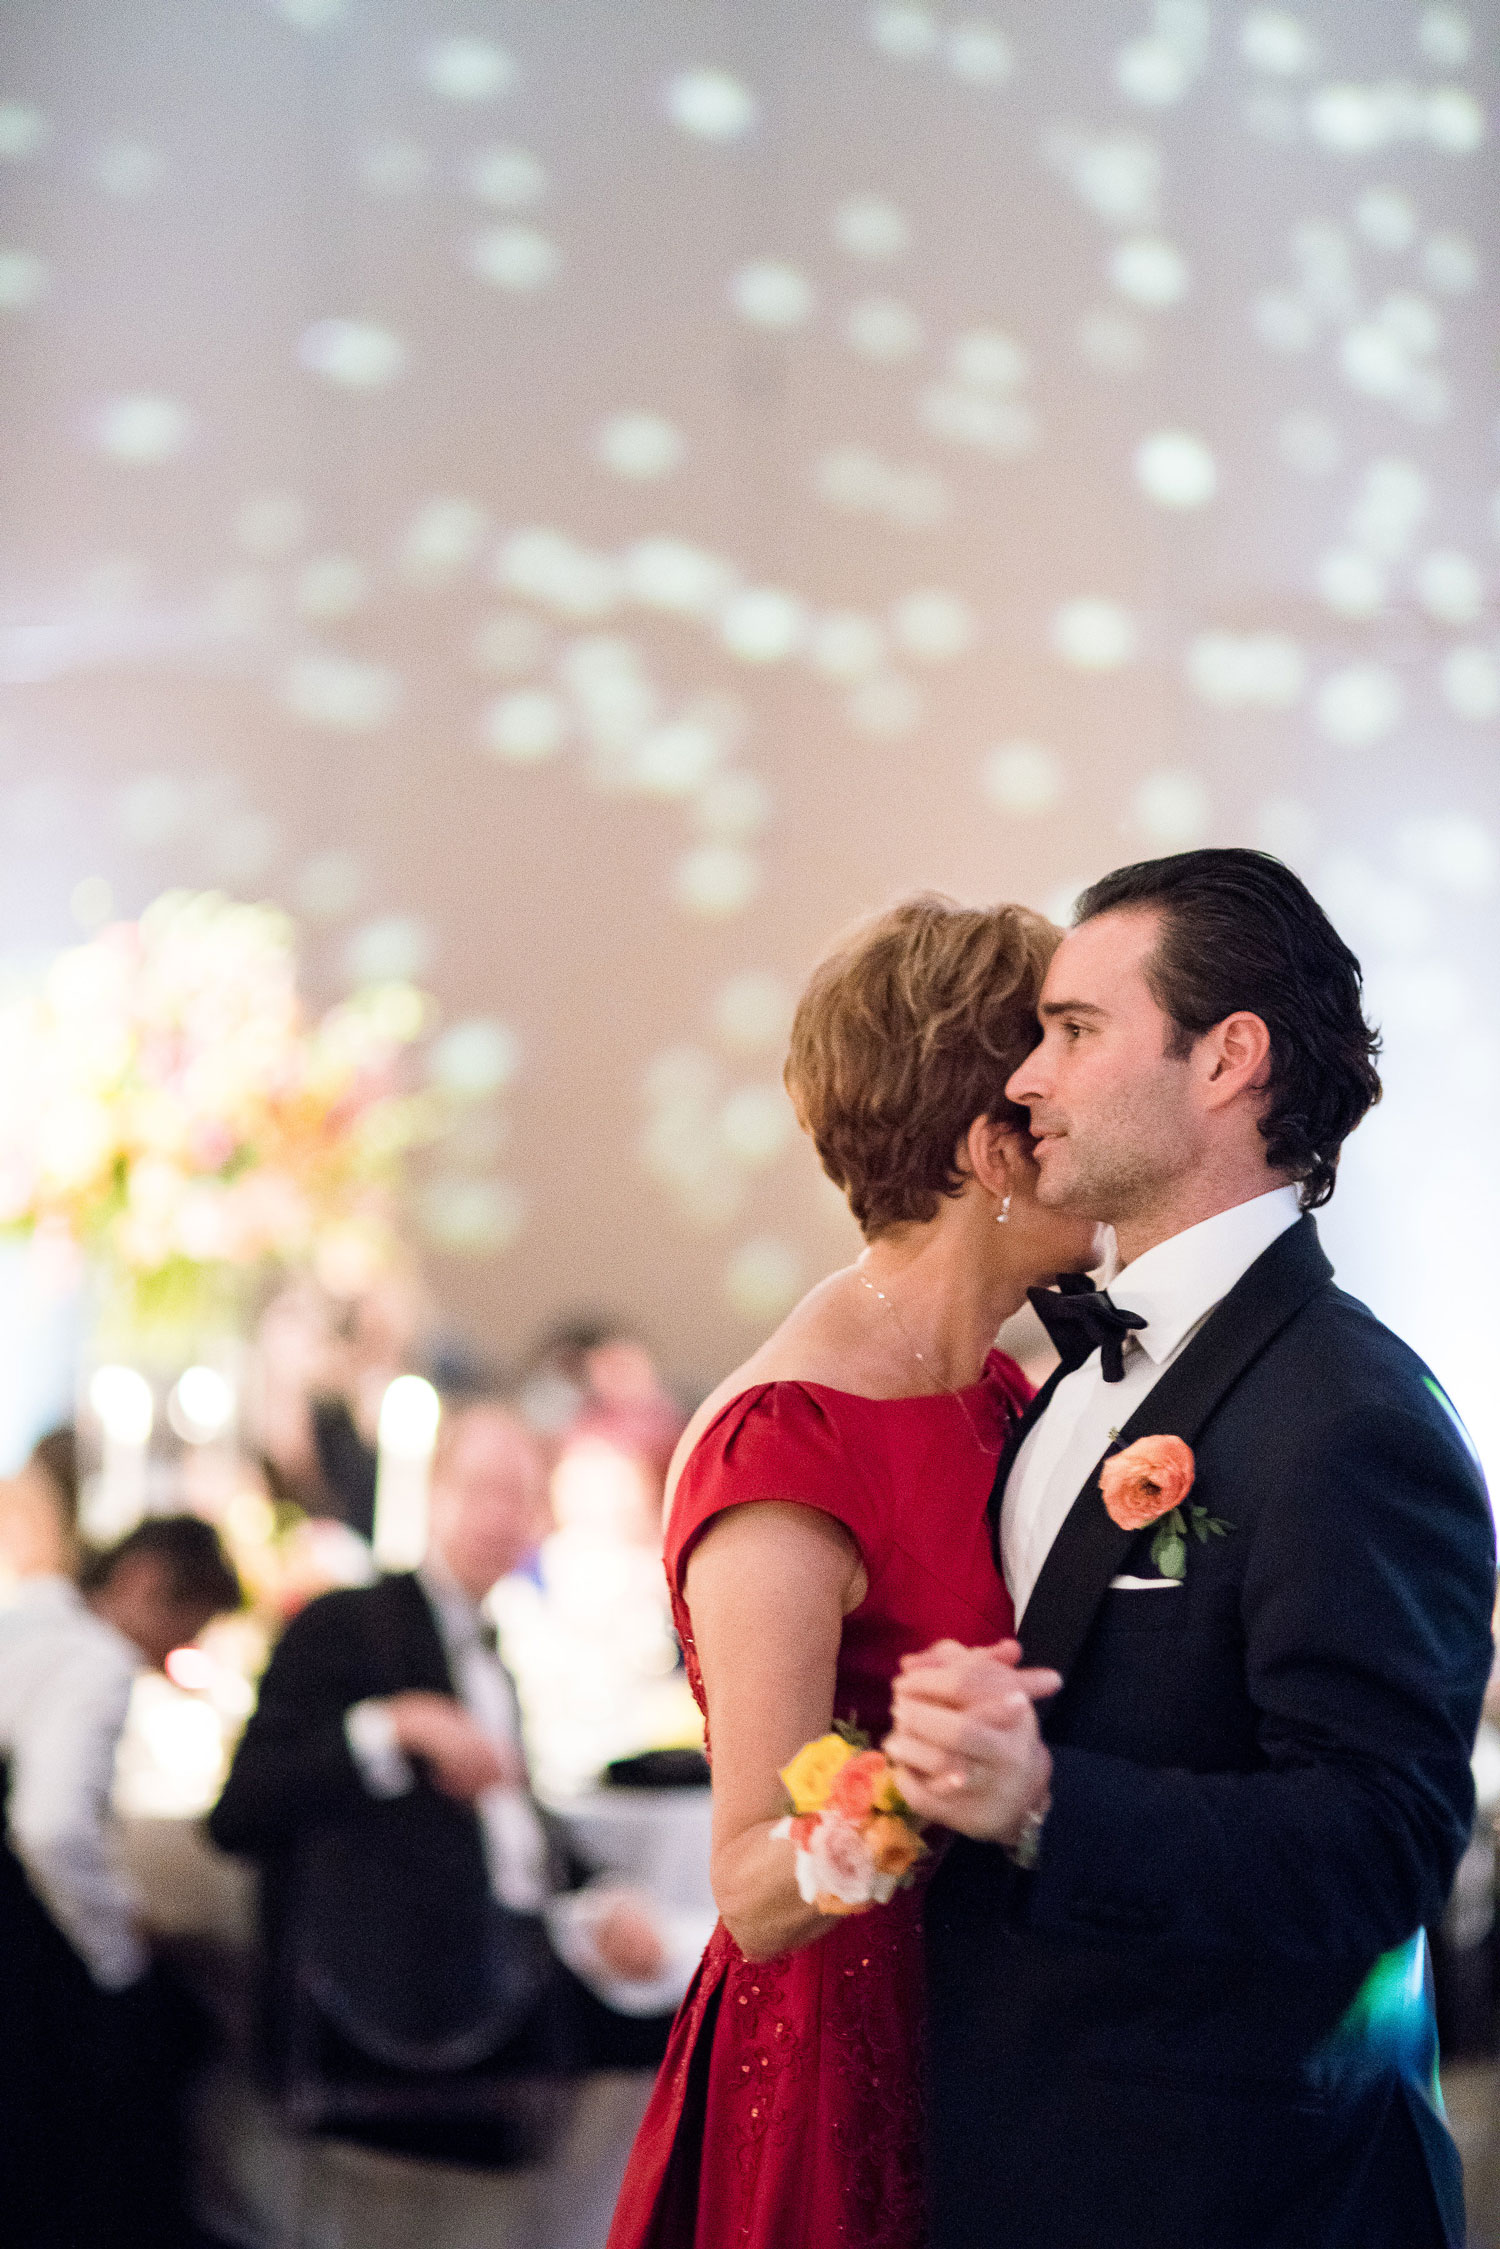 handsome groom new york wedding dancing with mom at wedding reception